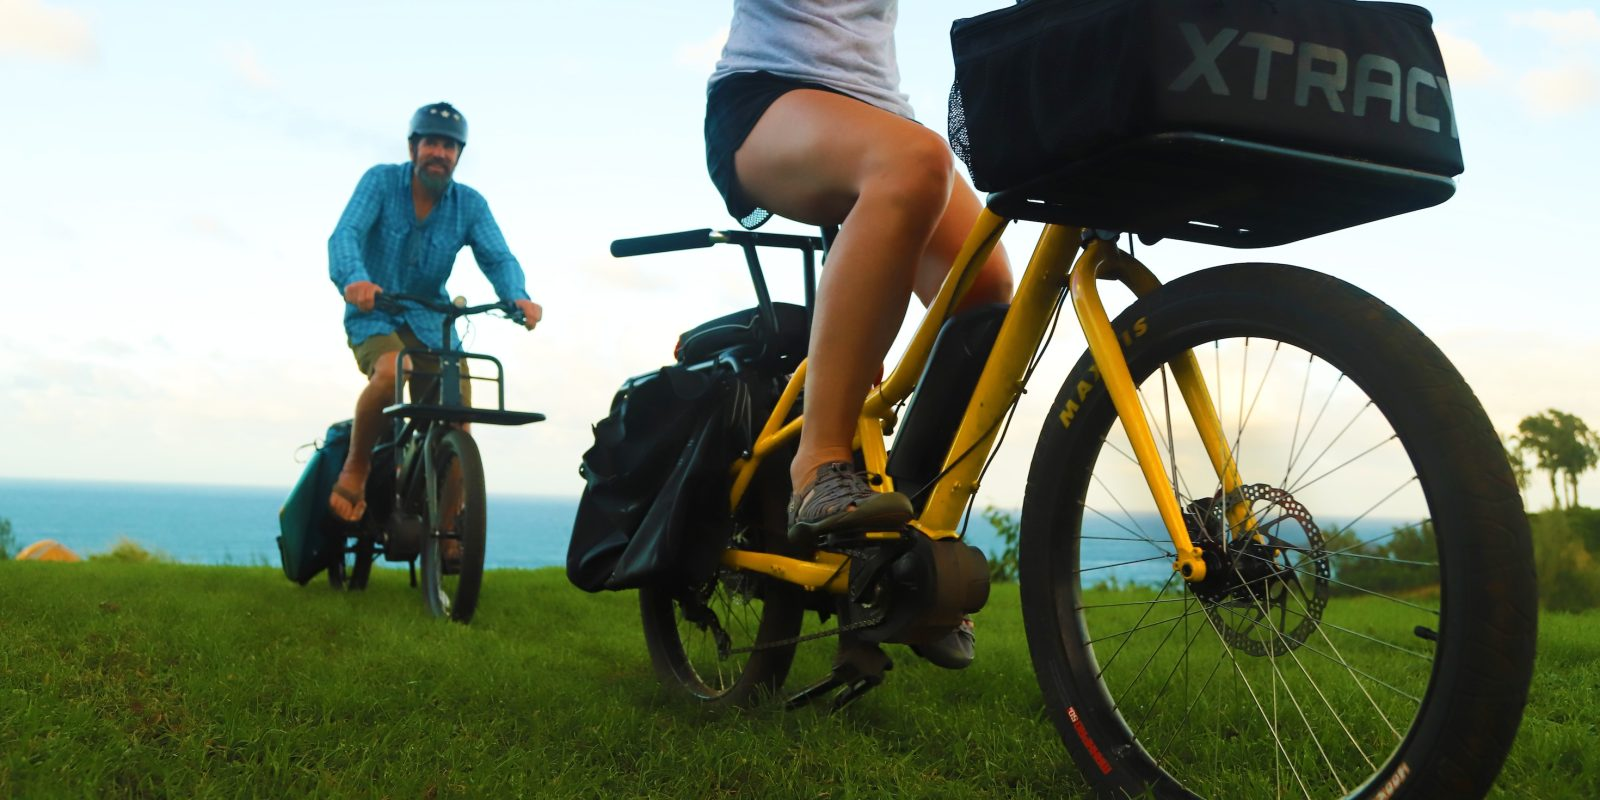 Xtracycle S New Electric Bicycle Morphs Between Regular City Bike Stretched Cargo